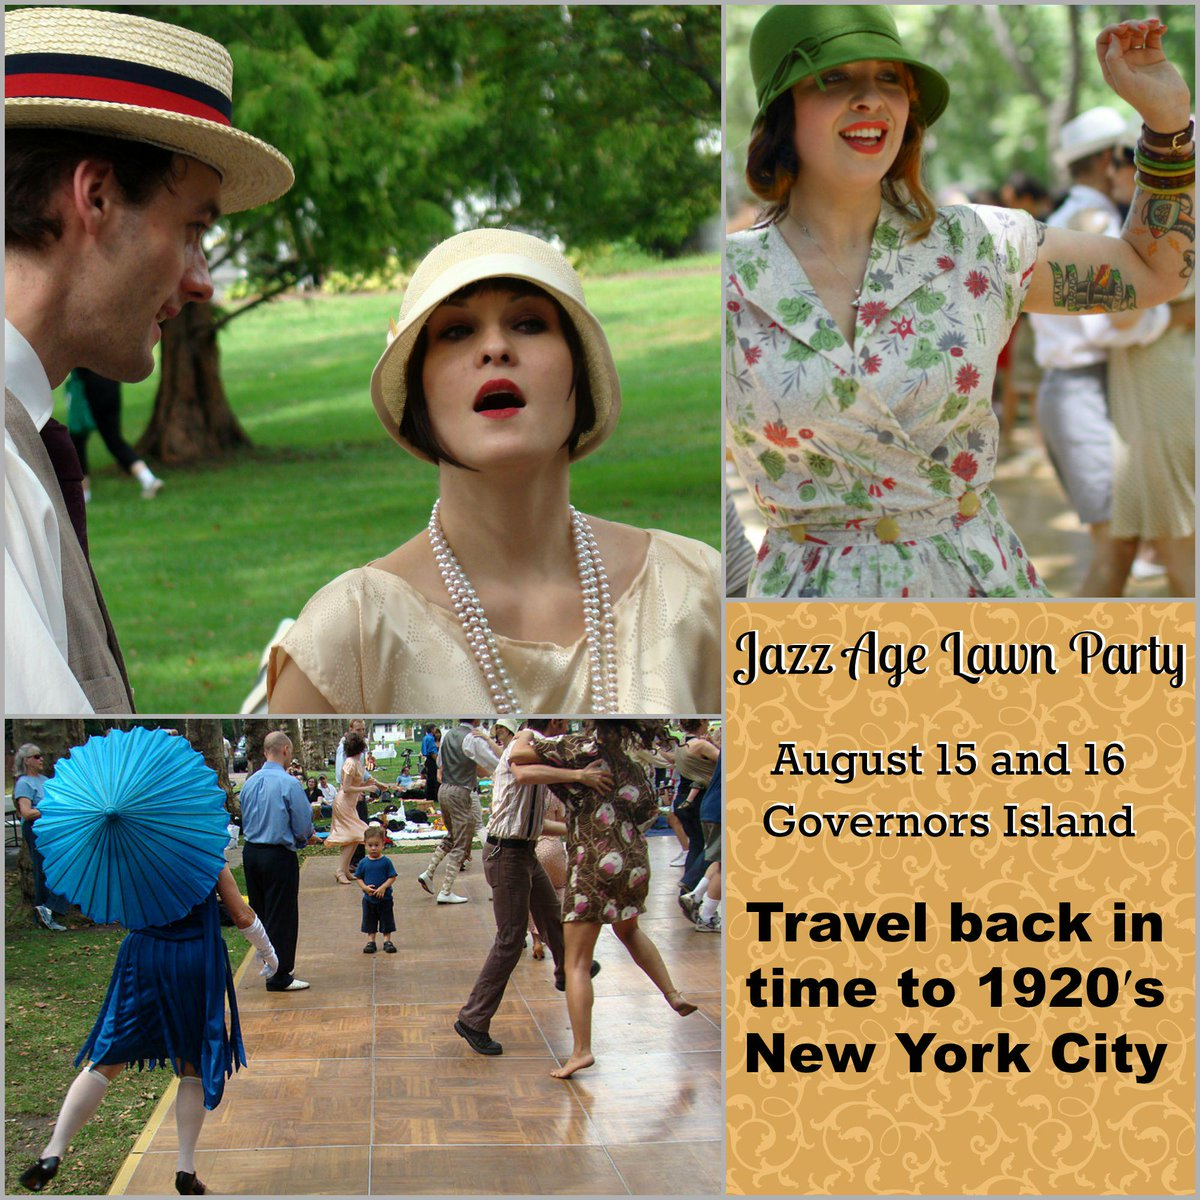 The Jazz Age Lawn Party @jazzagenyc is Aug 15 & 16 at Governors Island! http://t.co/VSjikGjfuy #JazzAgeLawnParty #NYC http://t.co/sll574jetm